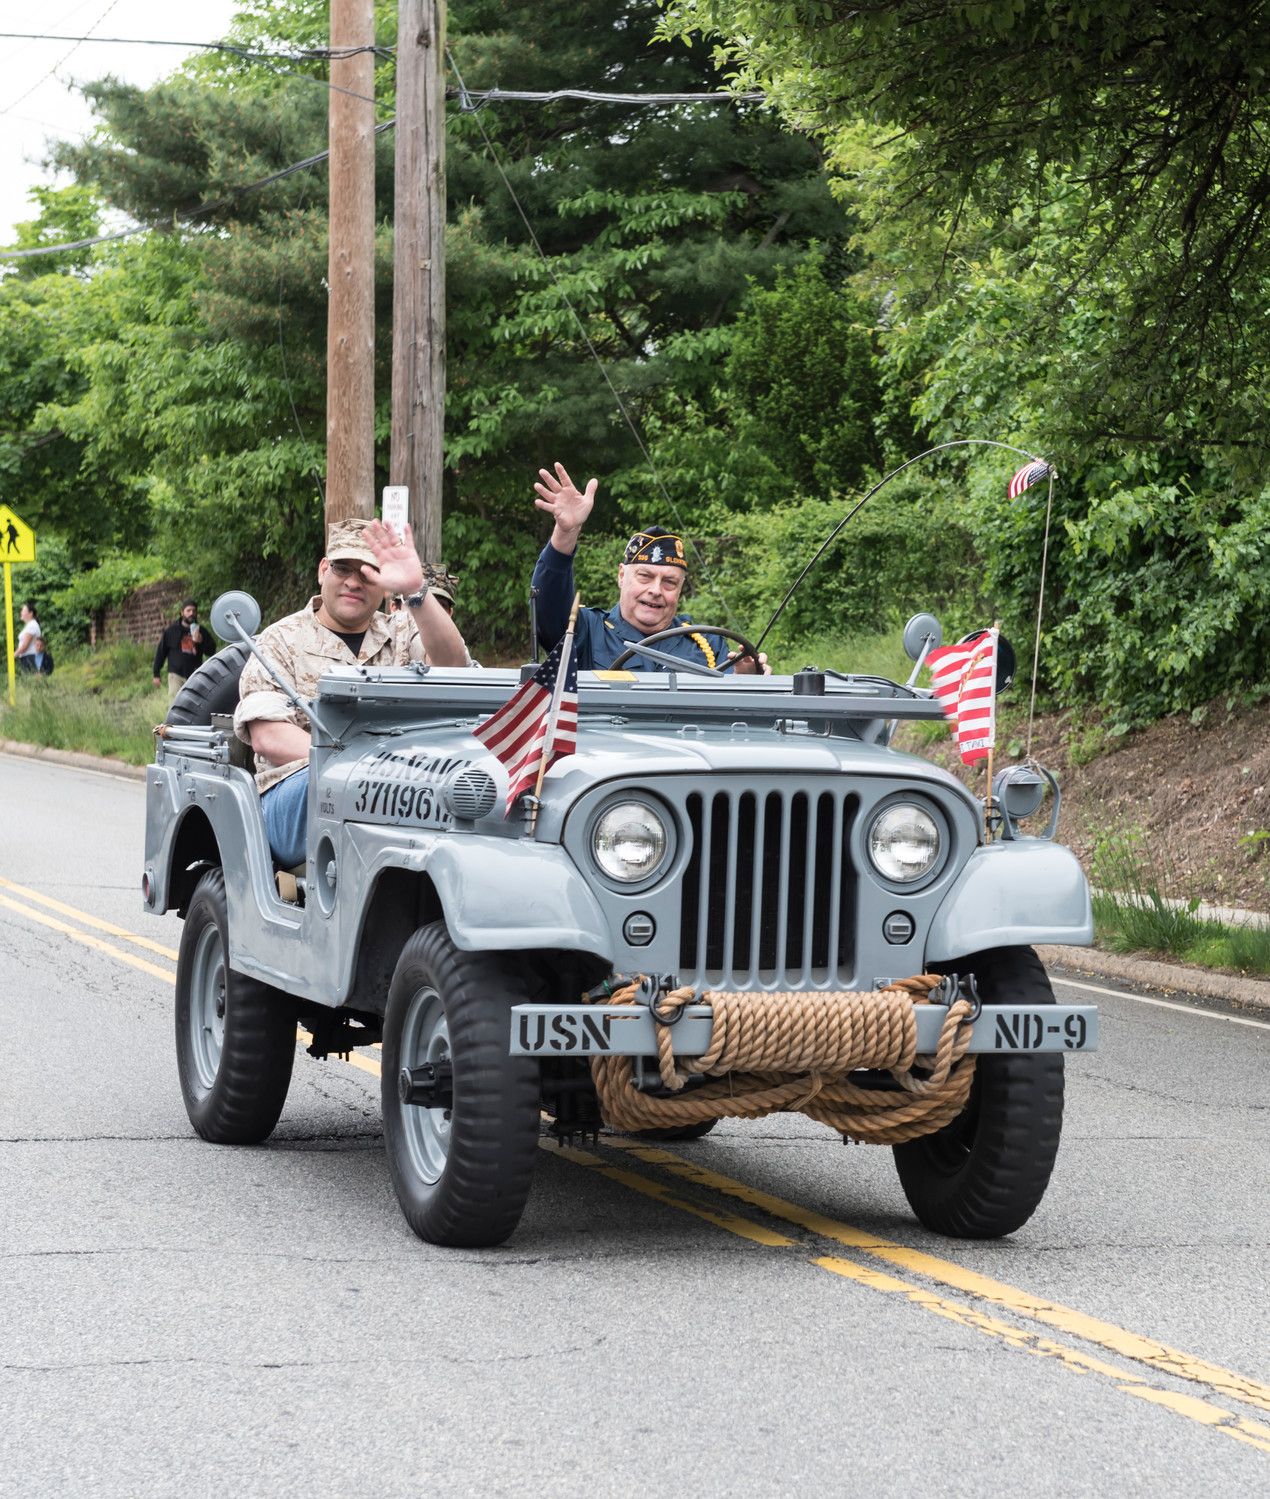 Legionnaire Joe Brandeis showed off his fully restored 1954 original Navy jeep during the parade. He was accompanied by his friend, John Orozco, who served in Desert Storm.